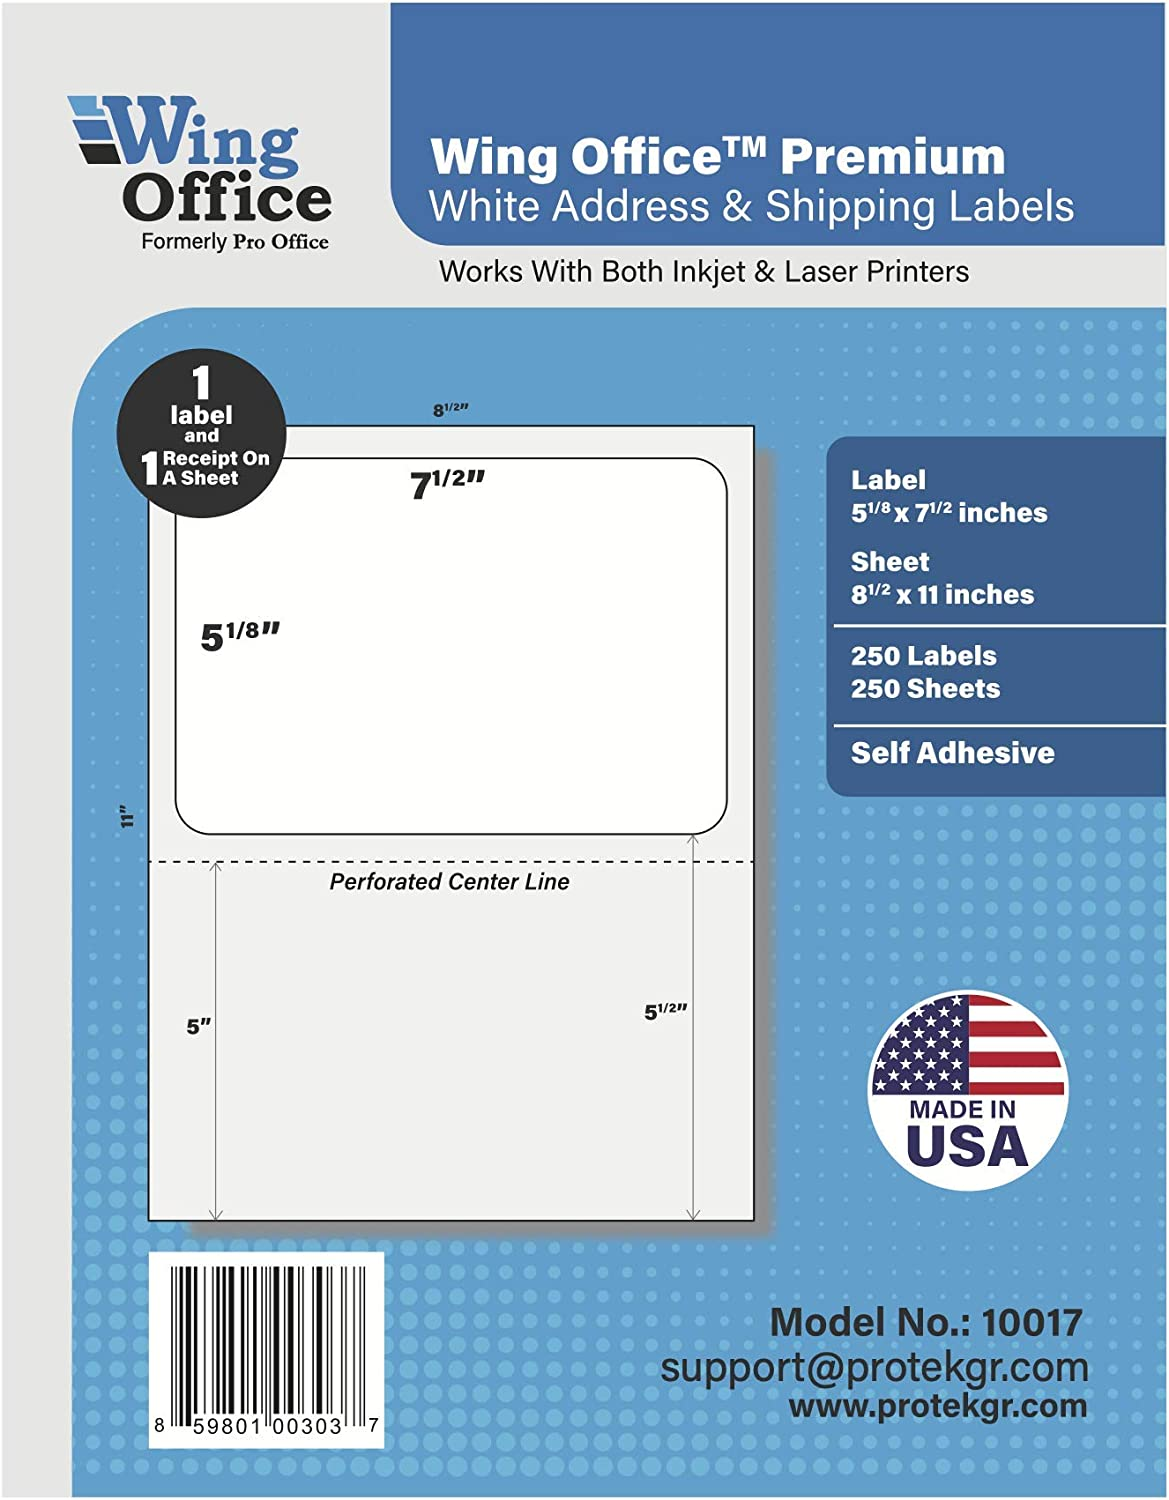 Pro Office Shipping Labels for Printers - Premium 250 Self Adhesive Labels with Receipt - Laser and Ink Jet Printers, White, Made in USA, 5.125 x 7.5 Inches, Pack of 250